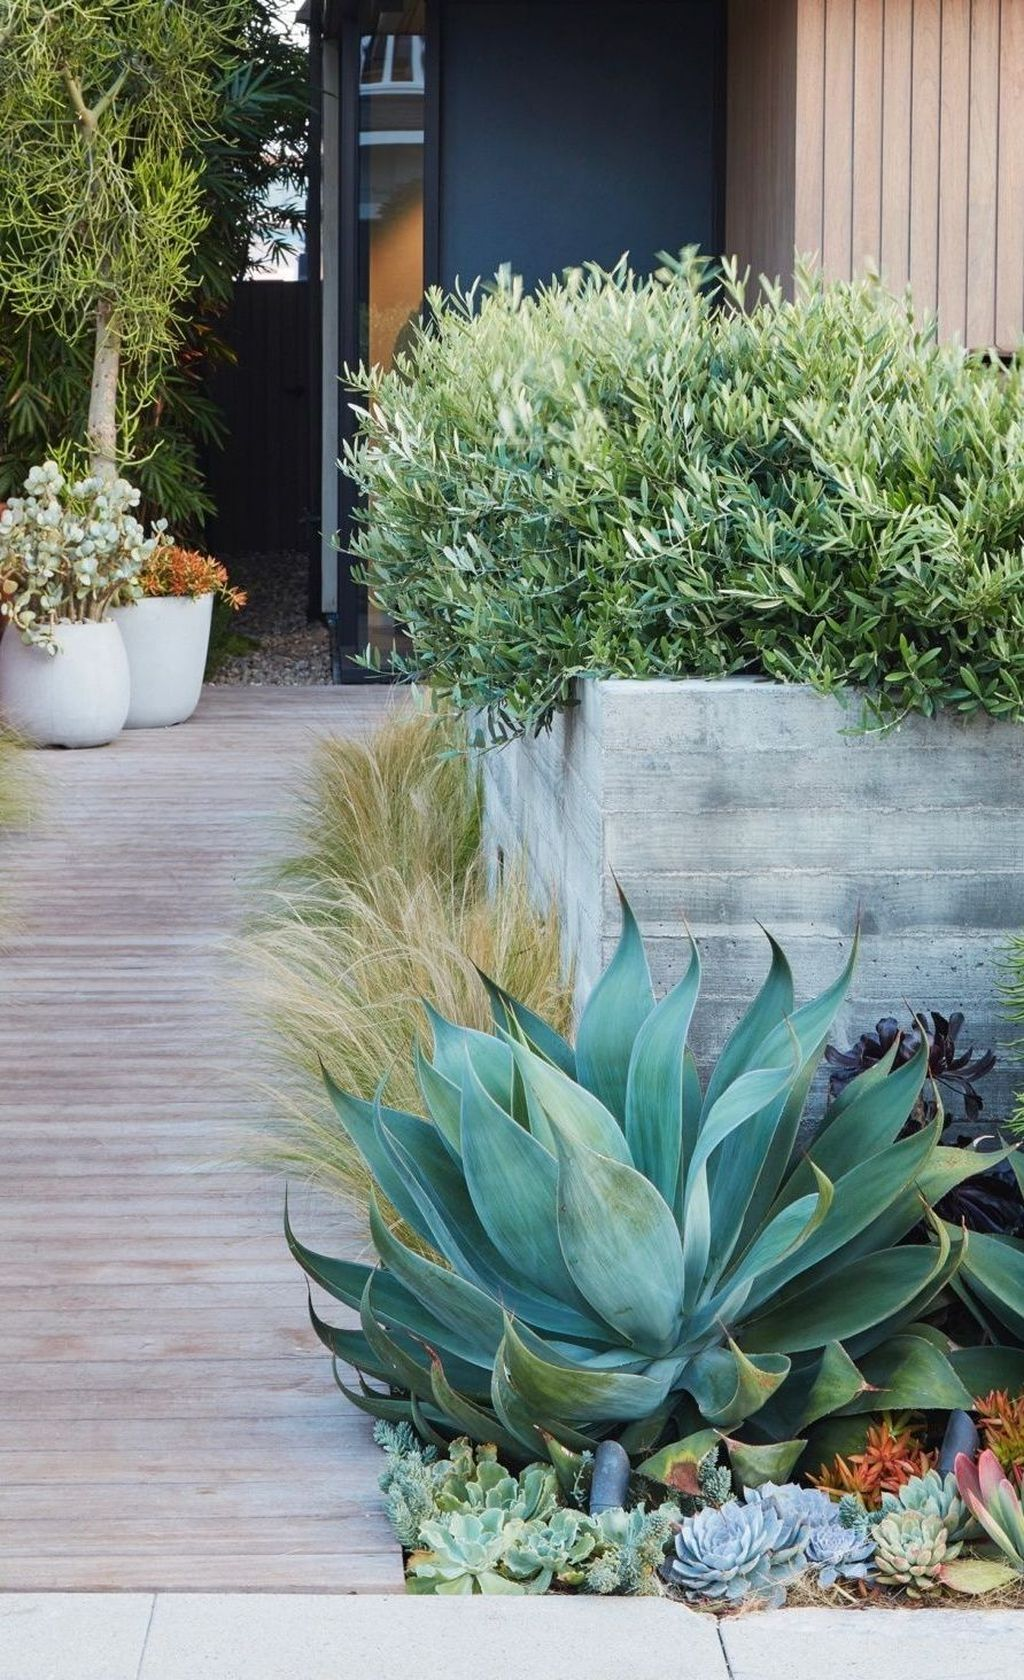 39 Affordable Low Water Garden Landscapes Design Ideas That Looks Amazing is part of Low water gardening, Succulent garden design, Low water landscaping, Dry garden, Succulent landscaping, Garden landscape design - Water gardens are one of the most attractive kinds of gardens  Aside from the plants around it, the fishes swimming …